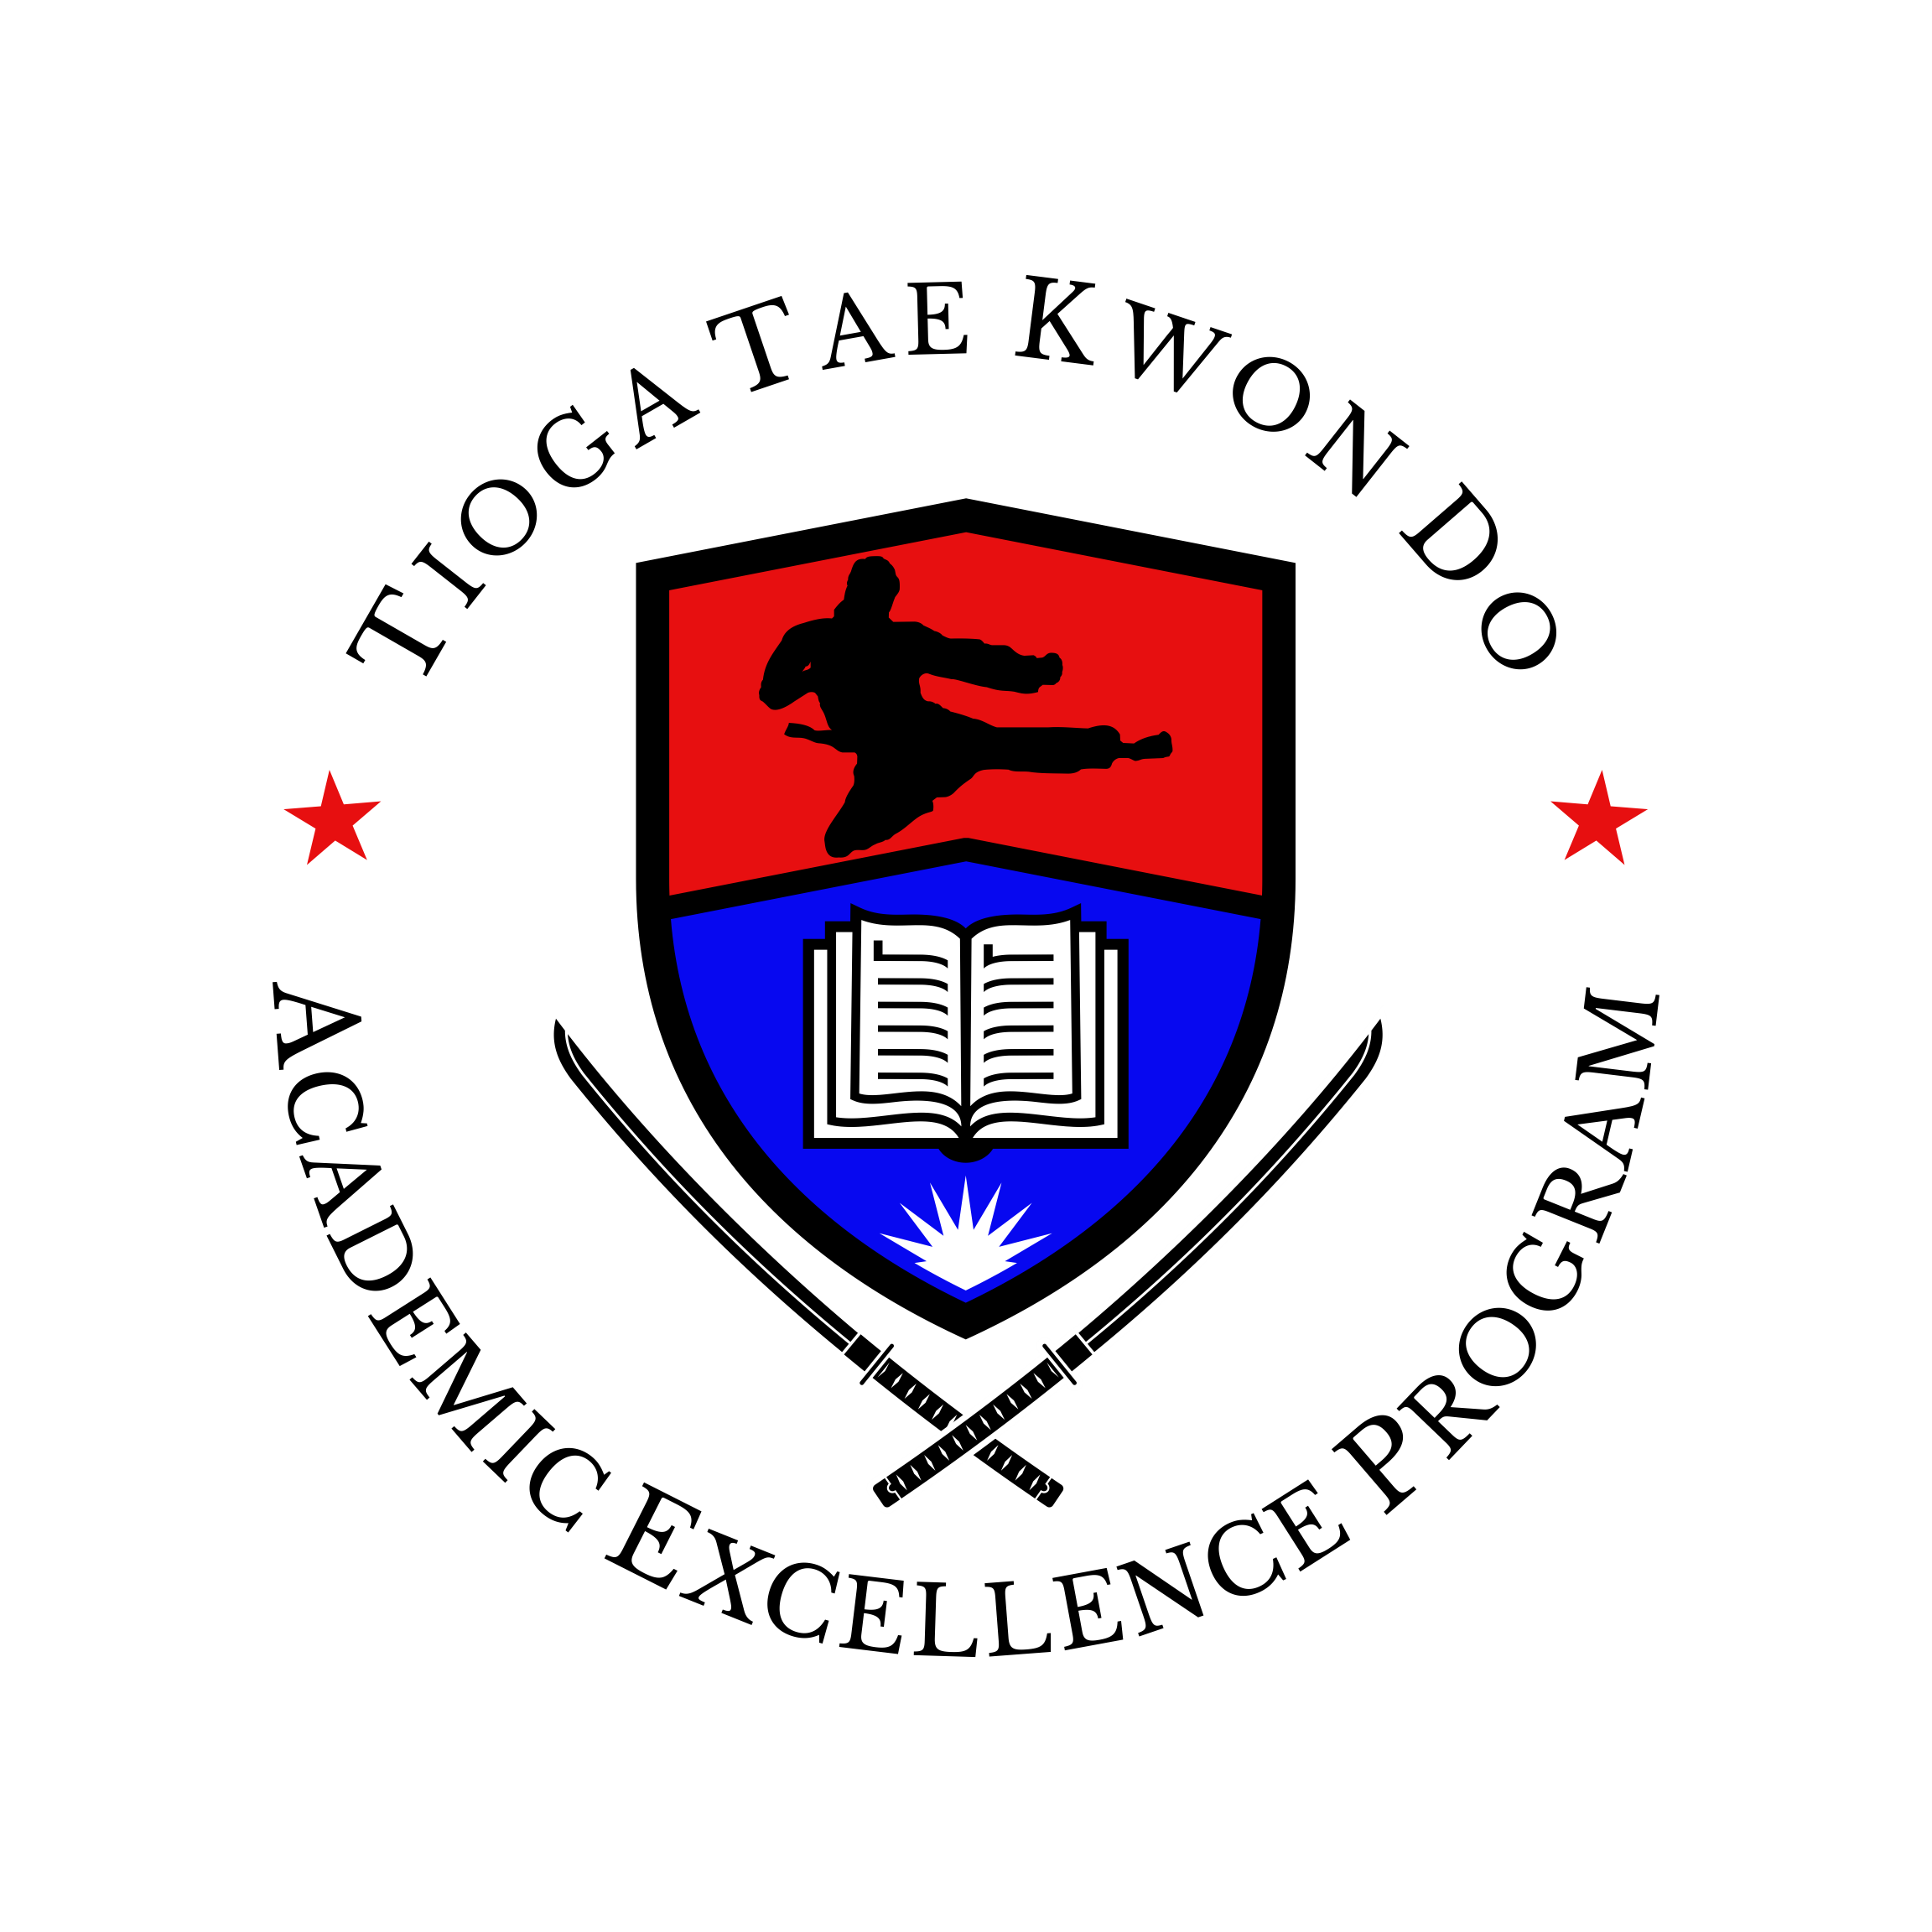 Martial Arts Academic Program in need of logo